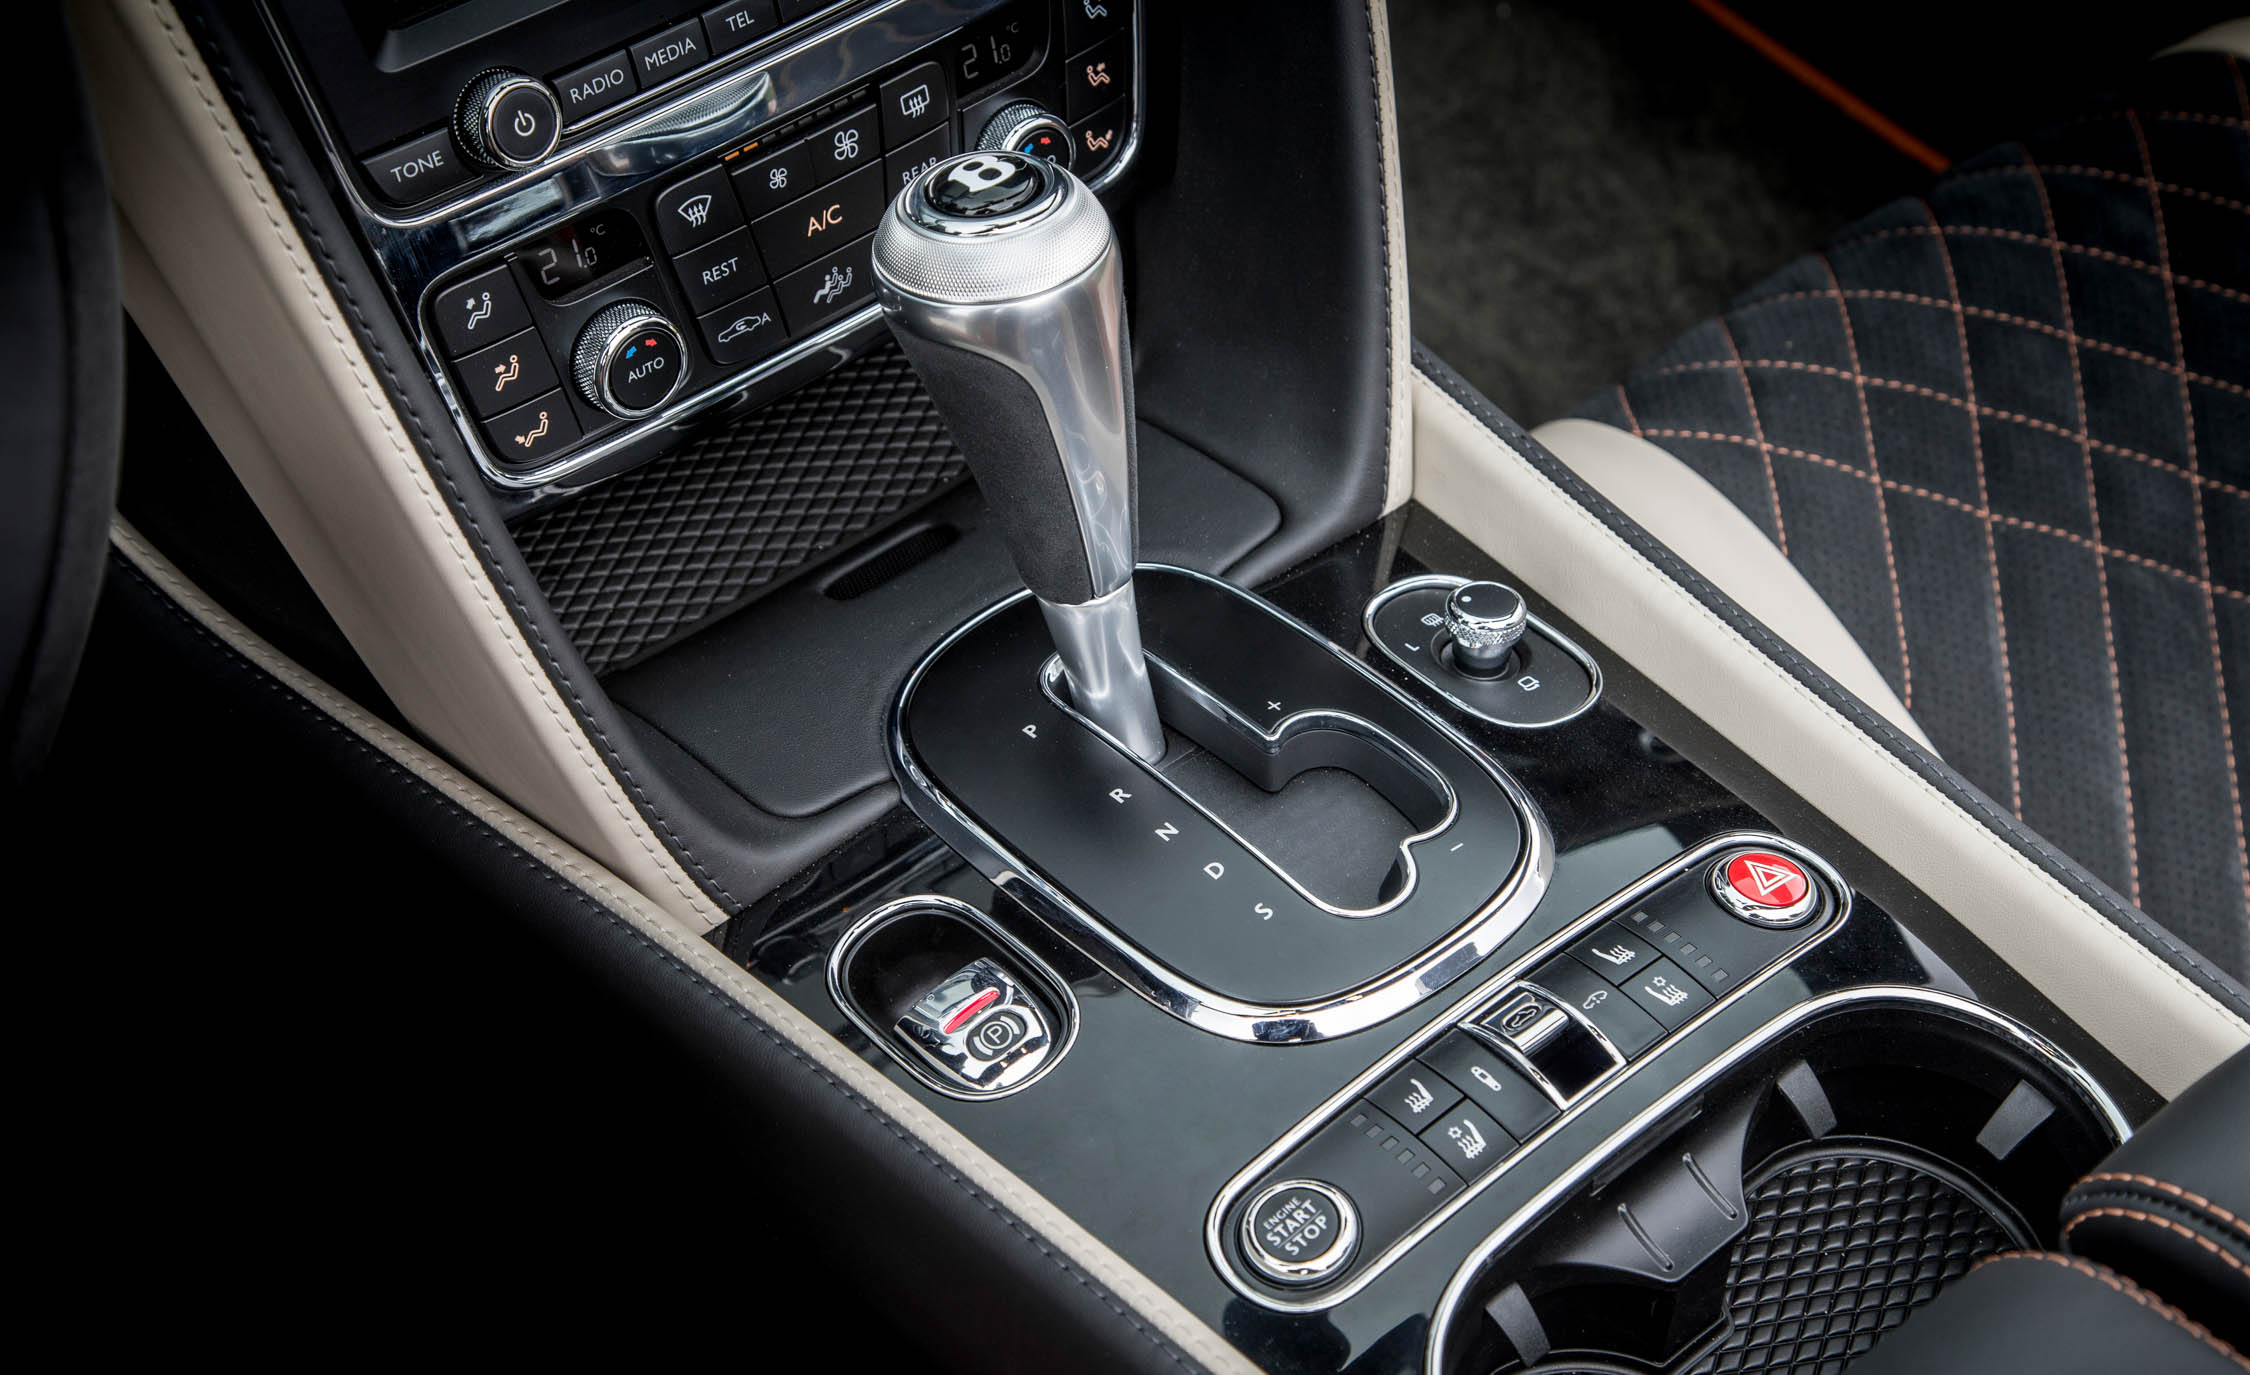 2018 Bentley Continental Supersports Convertible Interior View Gear Shift Knob (View 44 of 66)